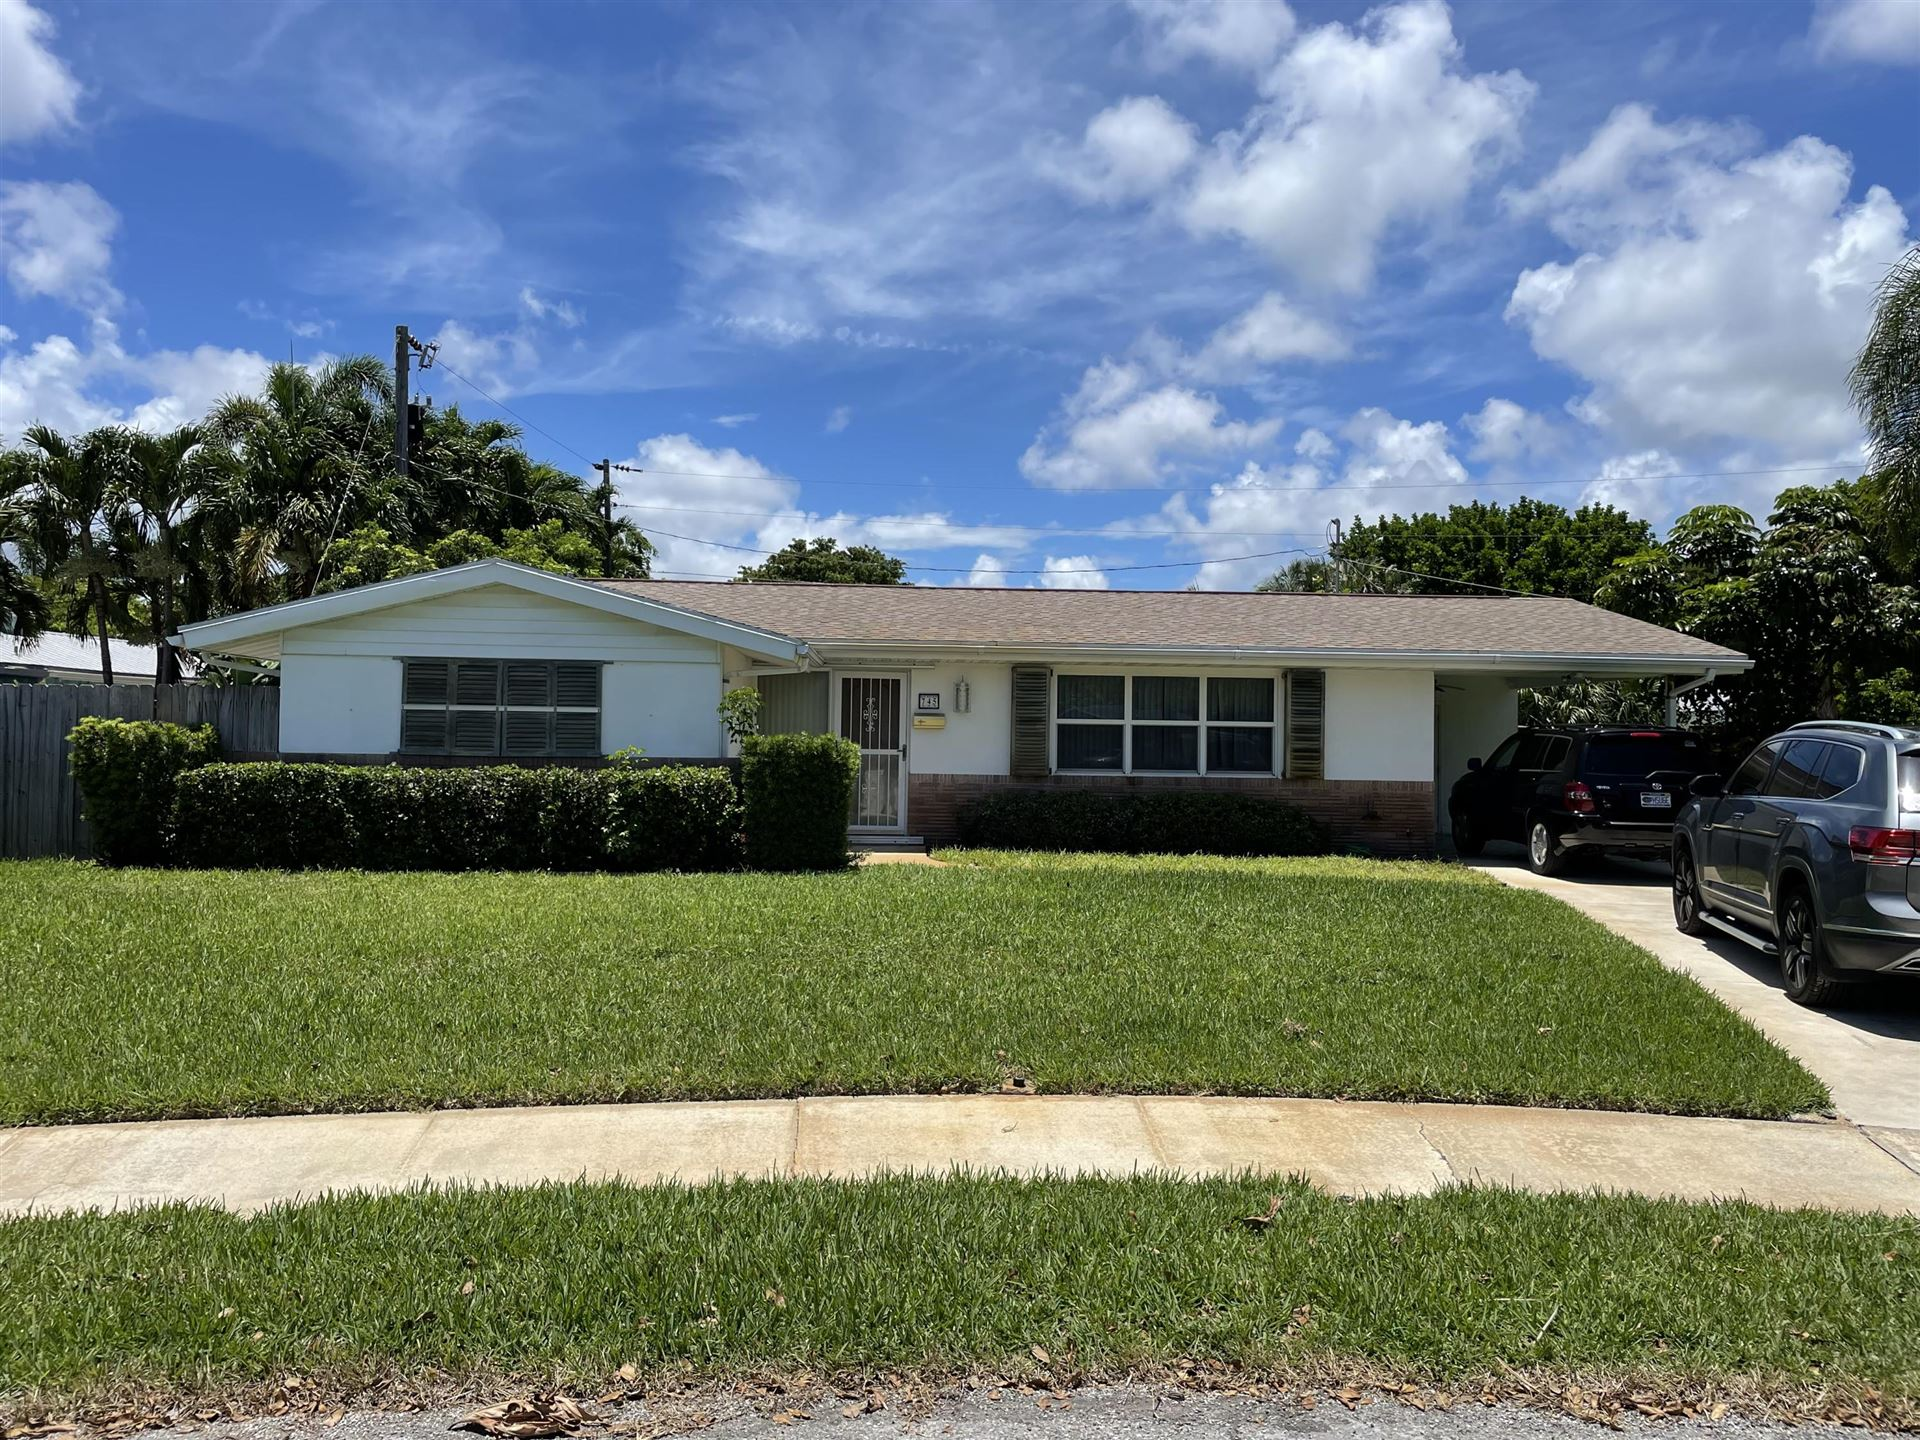 Photo of 745 Fairhaven Place, North Palm Beach, FL 33408 (MLS # RX-10732204)